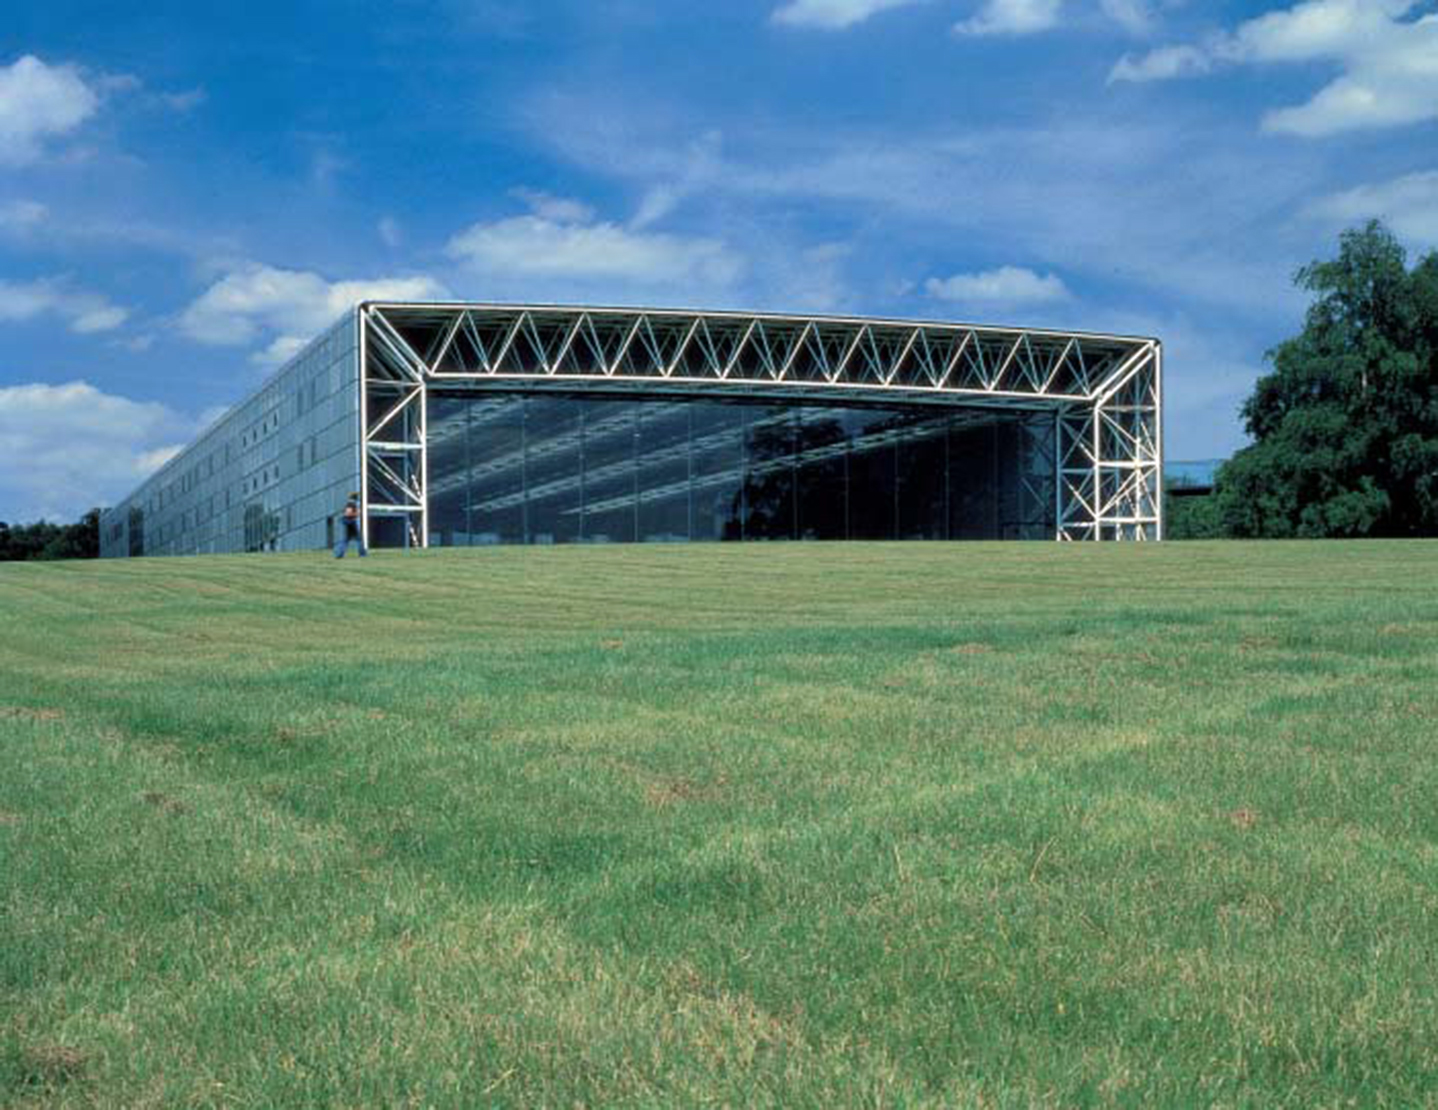 Sainsbury Center for Visual Arts, University of East Anglia